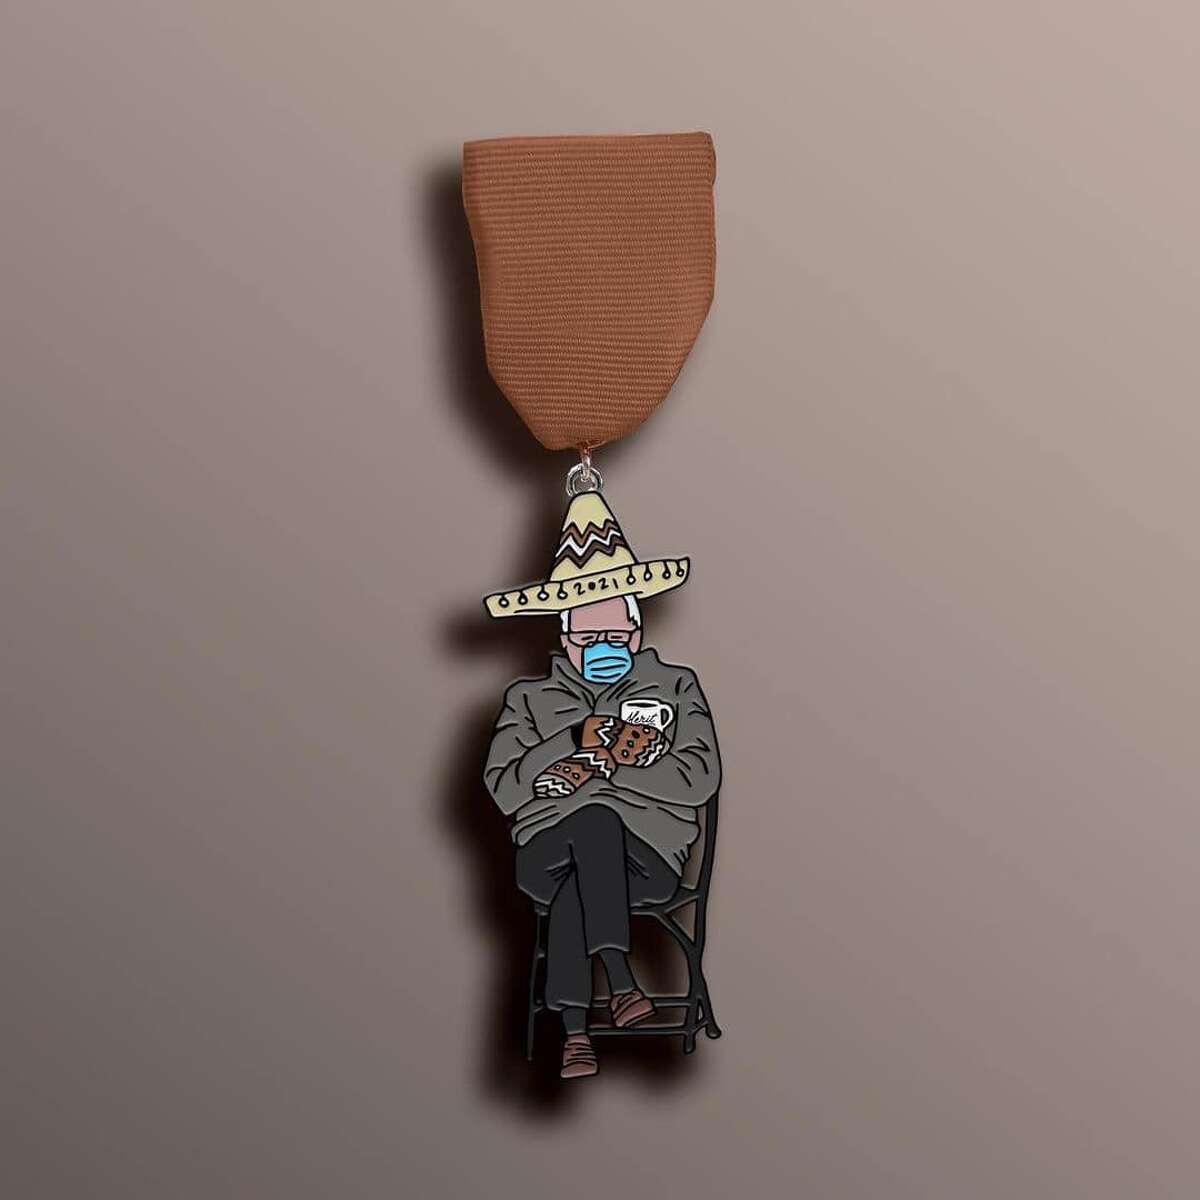 Merit Coffee has unveiled their Fiesta medal that showcases all of our moods right now.